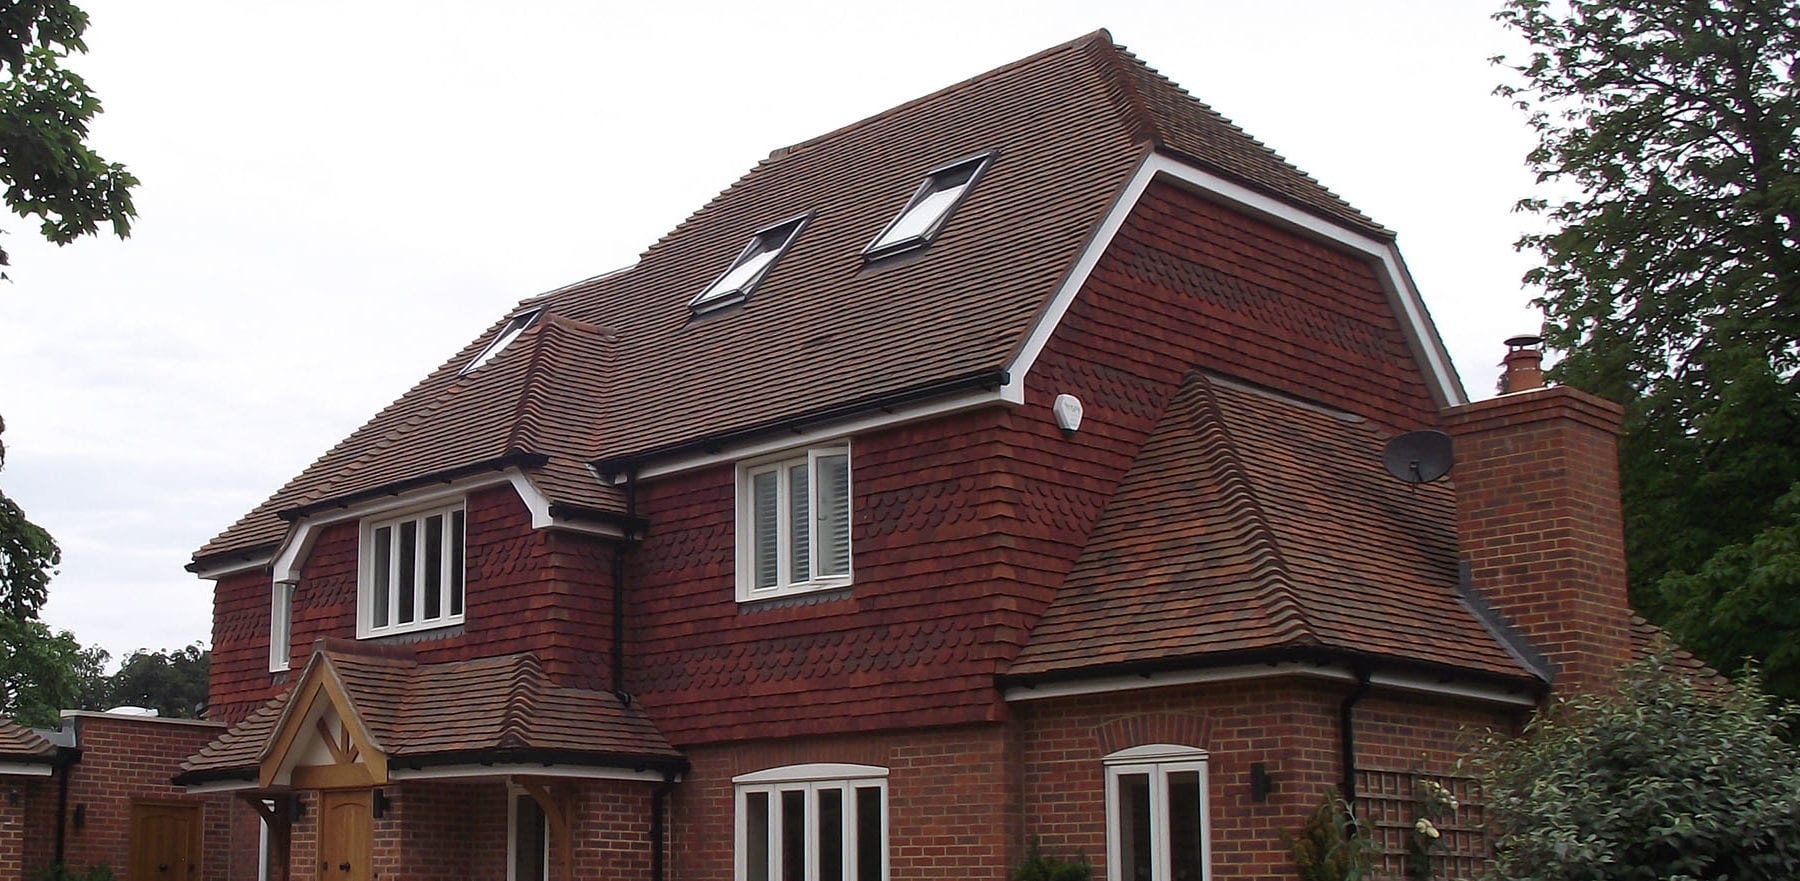 Lifestiles - Handcrafted Autumn Clay Roof Tiles - Seven Oaks, England